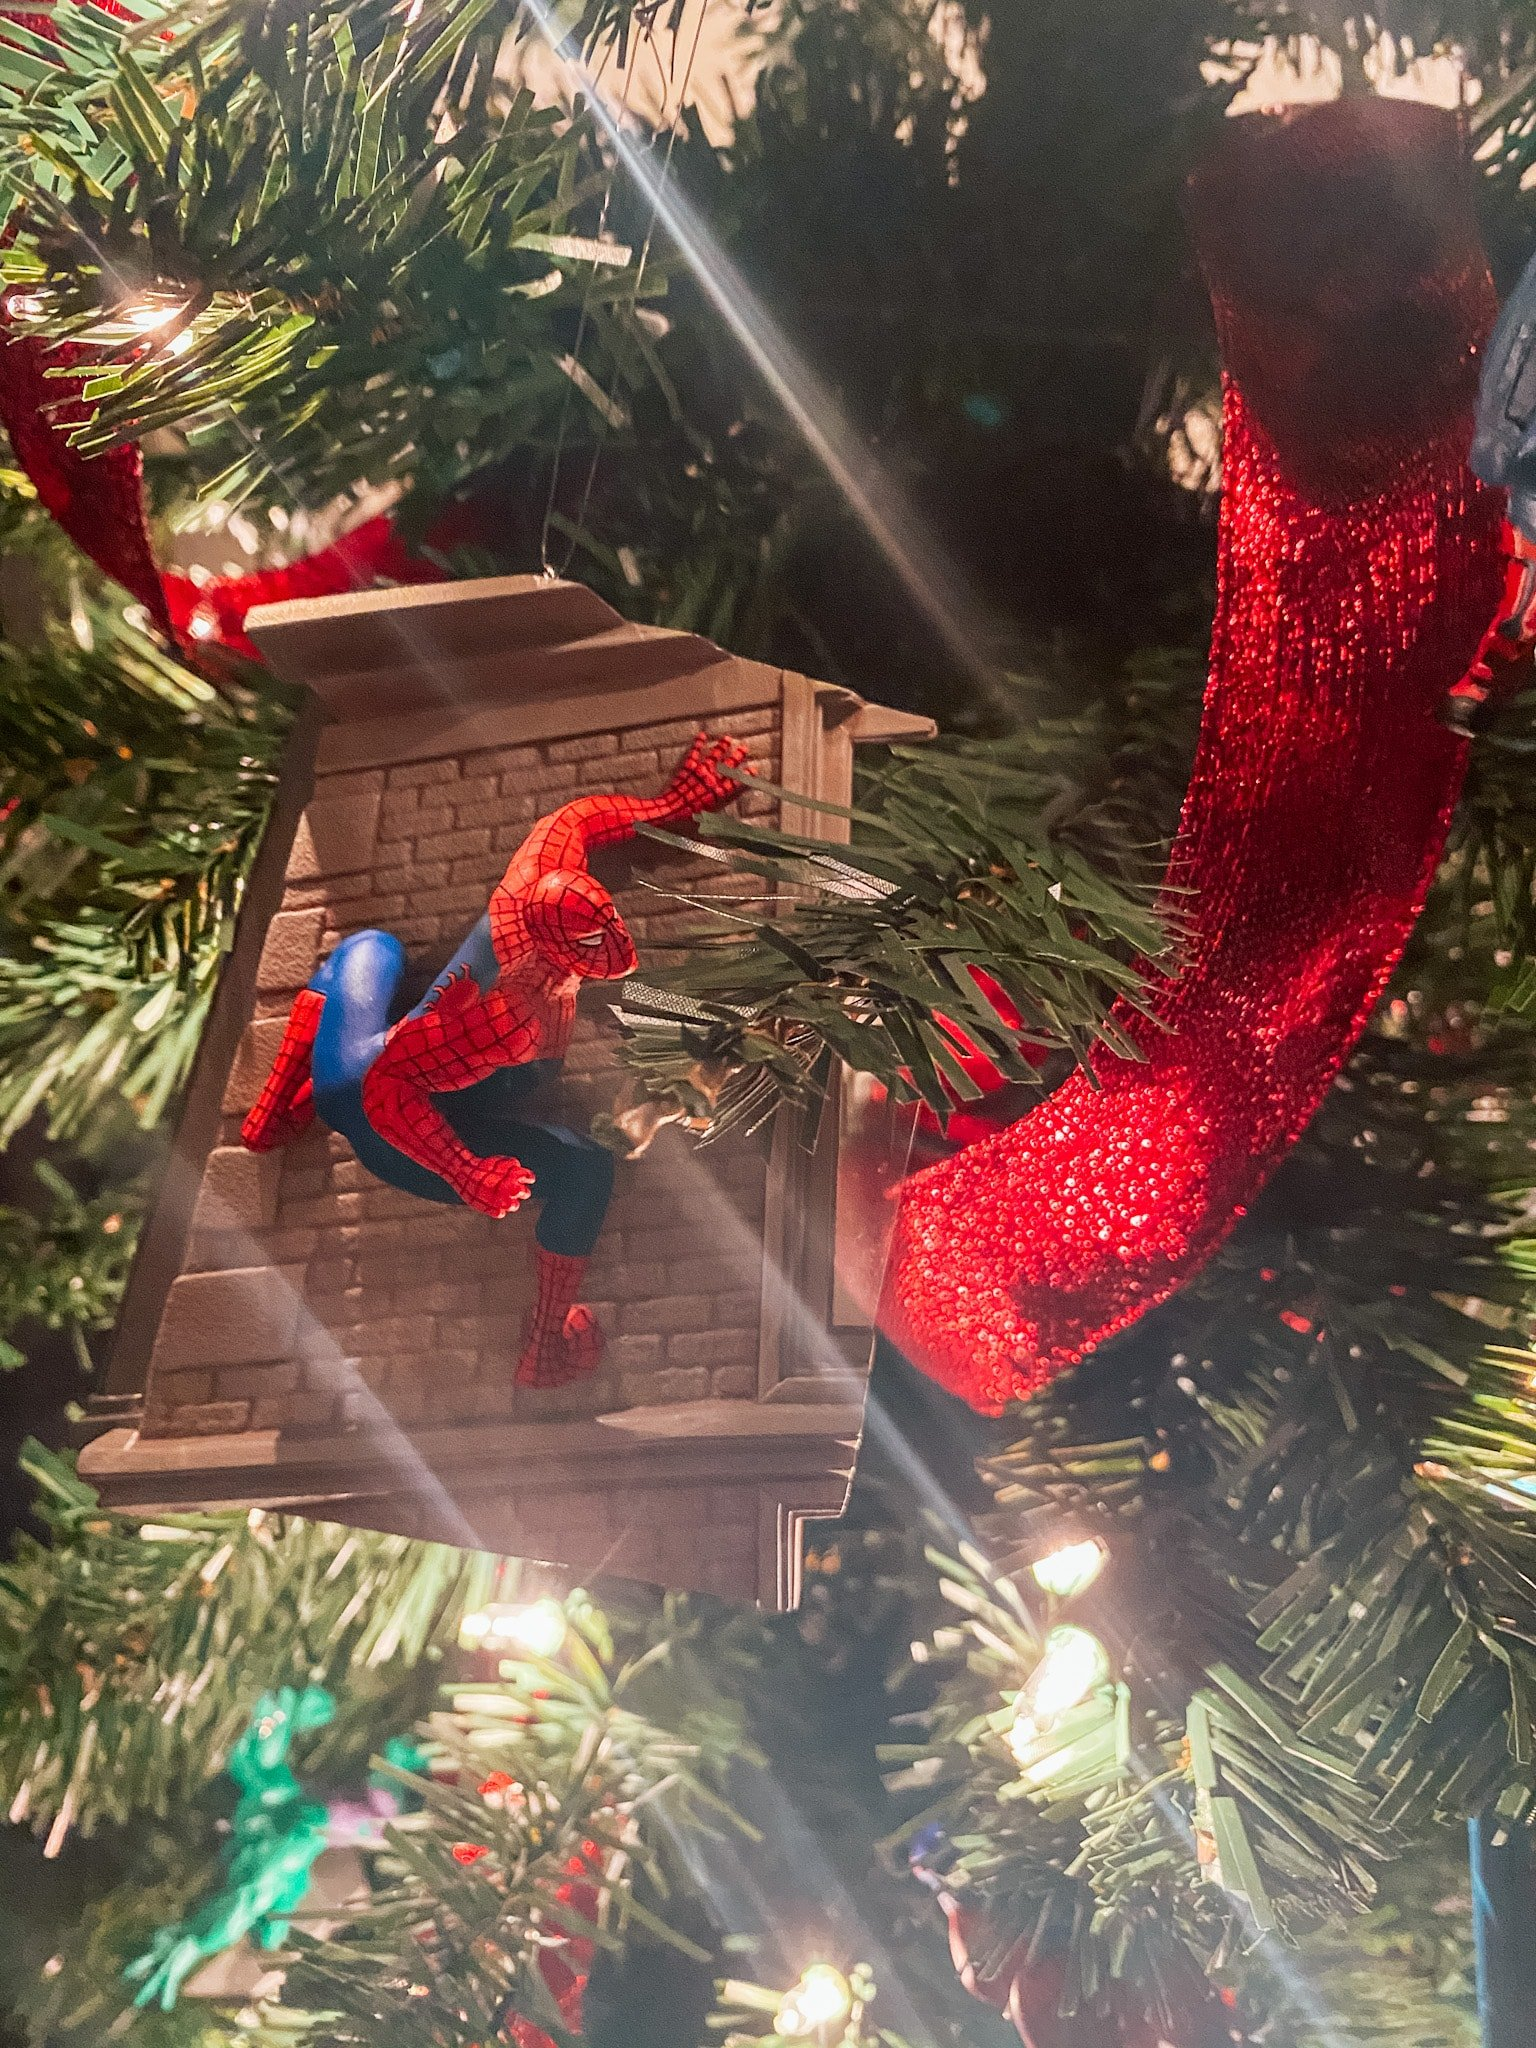 Spider-Man Christmas ornament